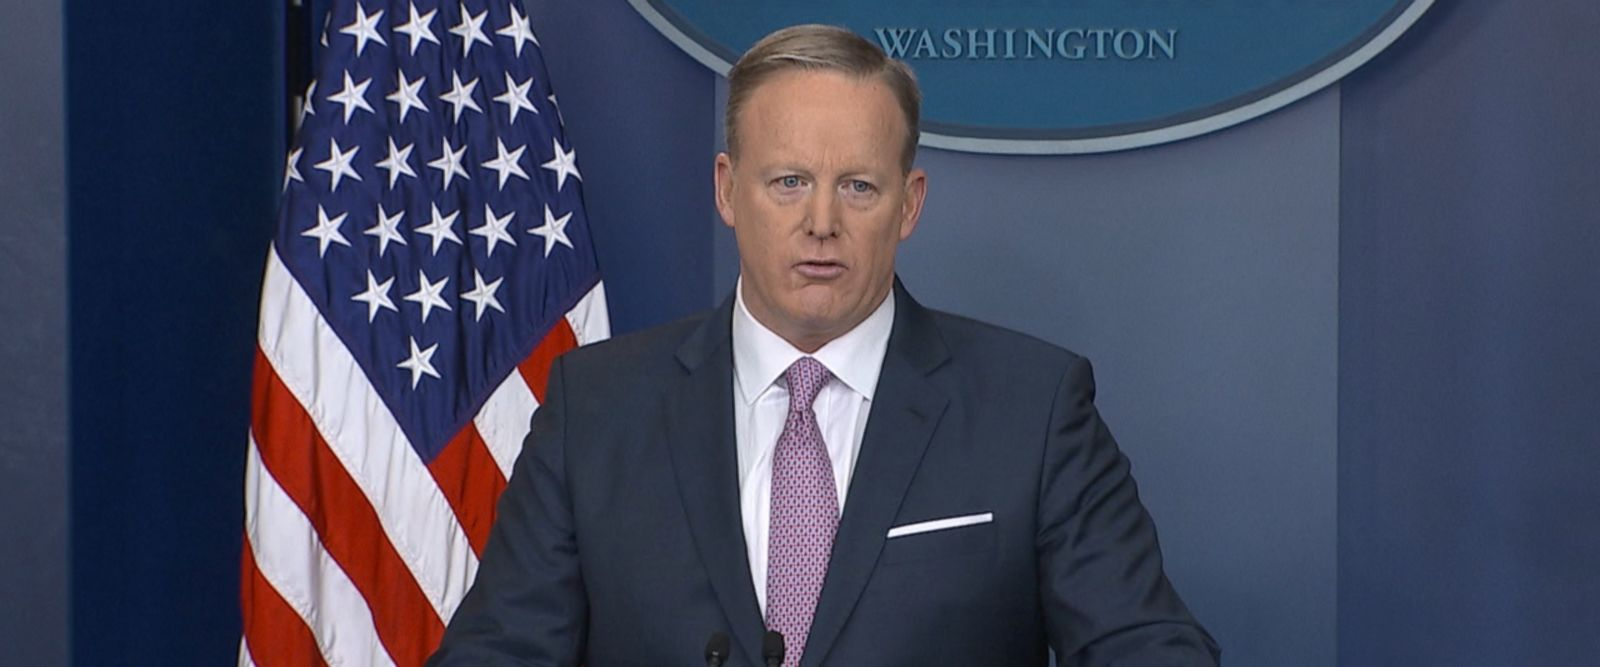 VIDEO: The White House press secretary for President Trump held his first press briefing answering questions.